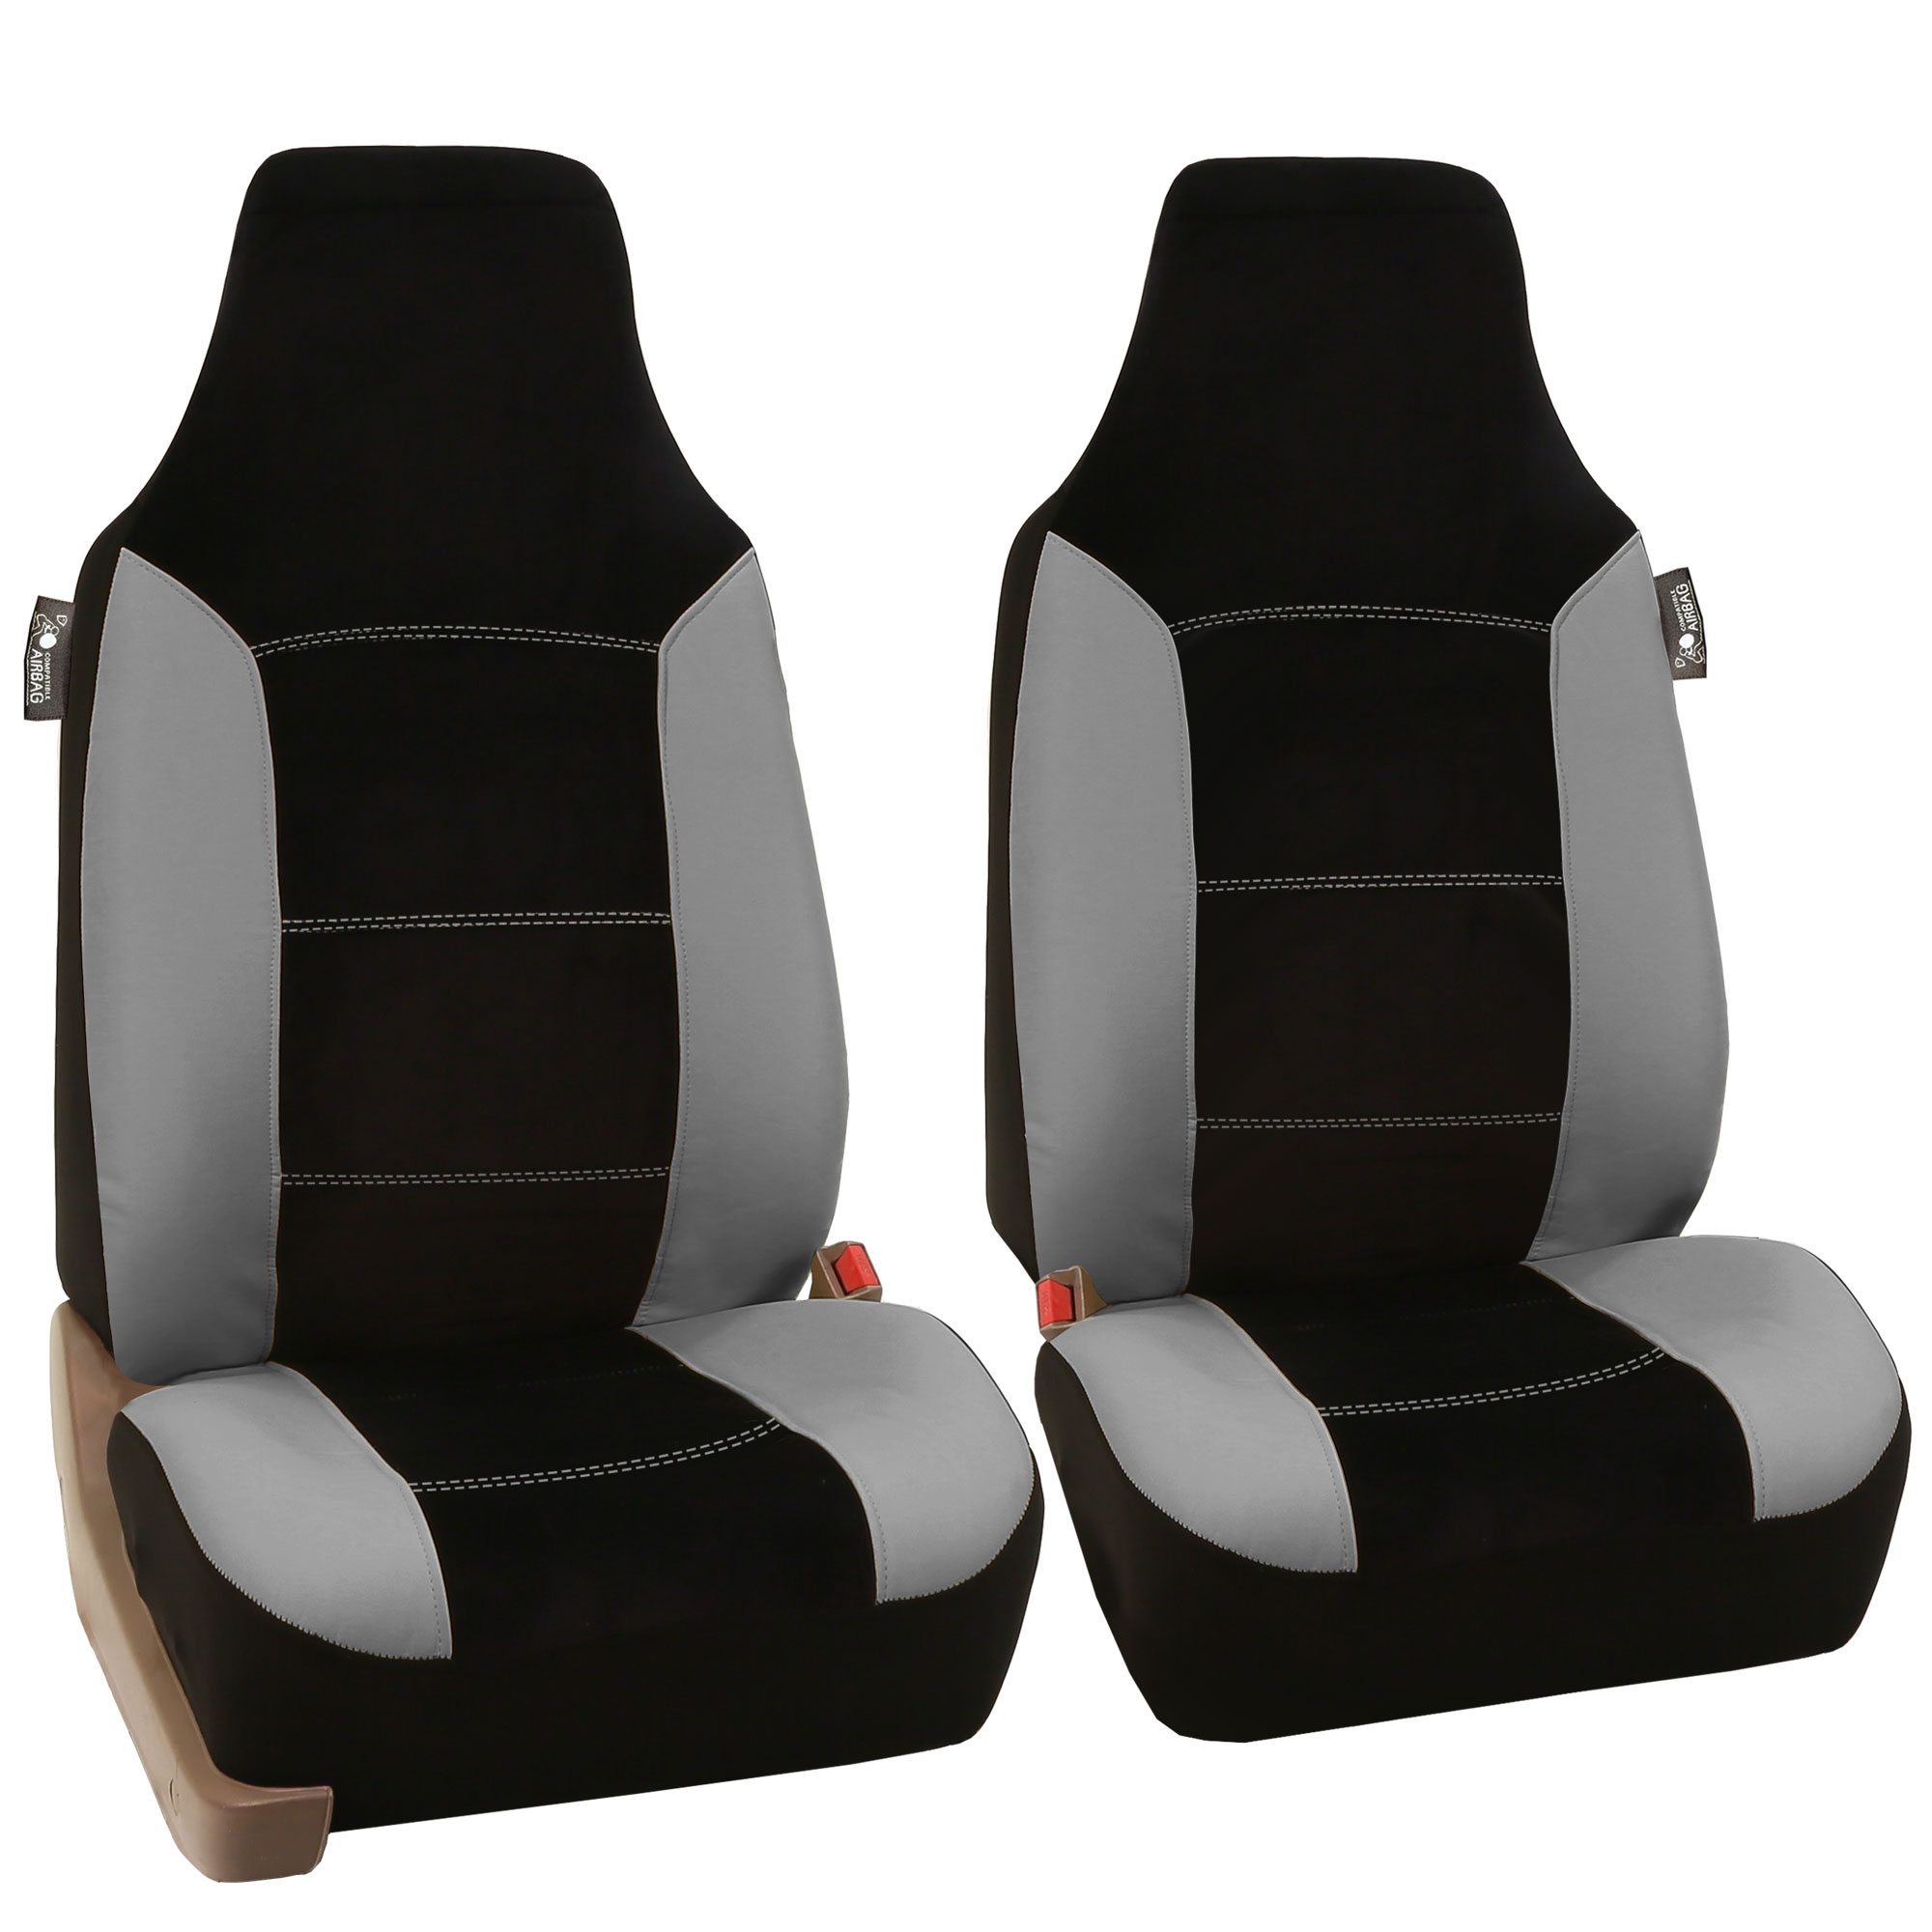 chair cover velour all weather wicker outdoor chairs leather car seat covers sport luxury top quality ebay